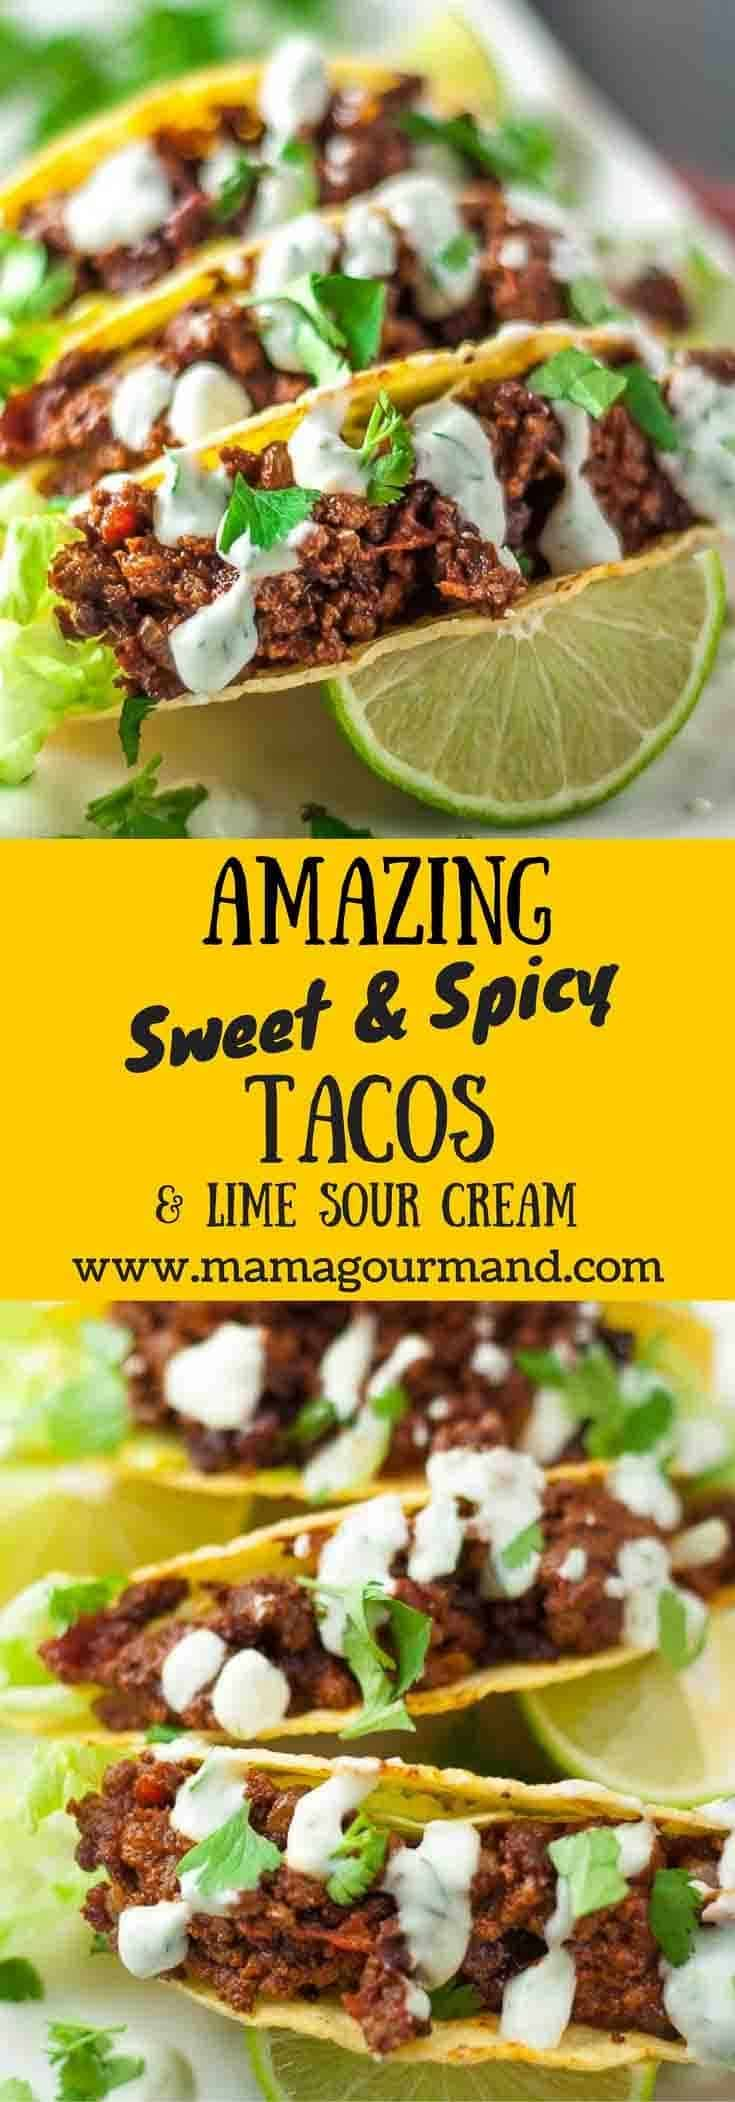 Sweet and spicy lime and sour cream tacos